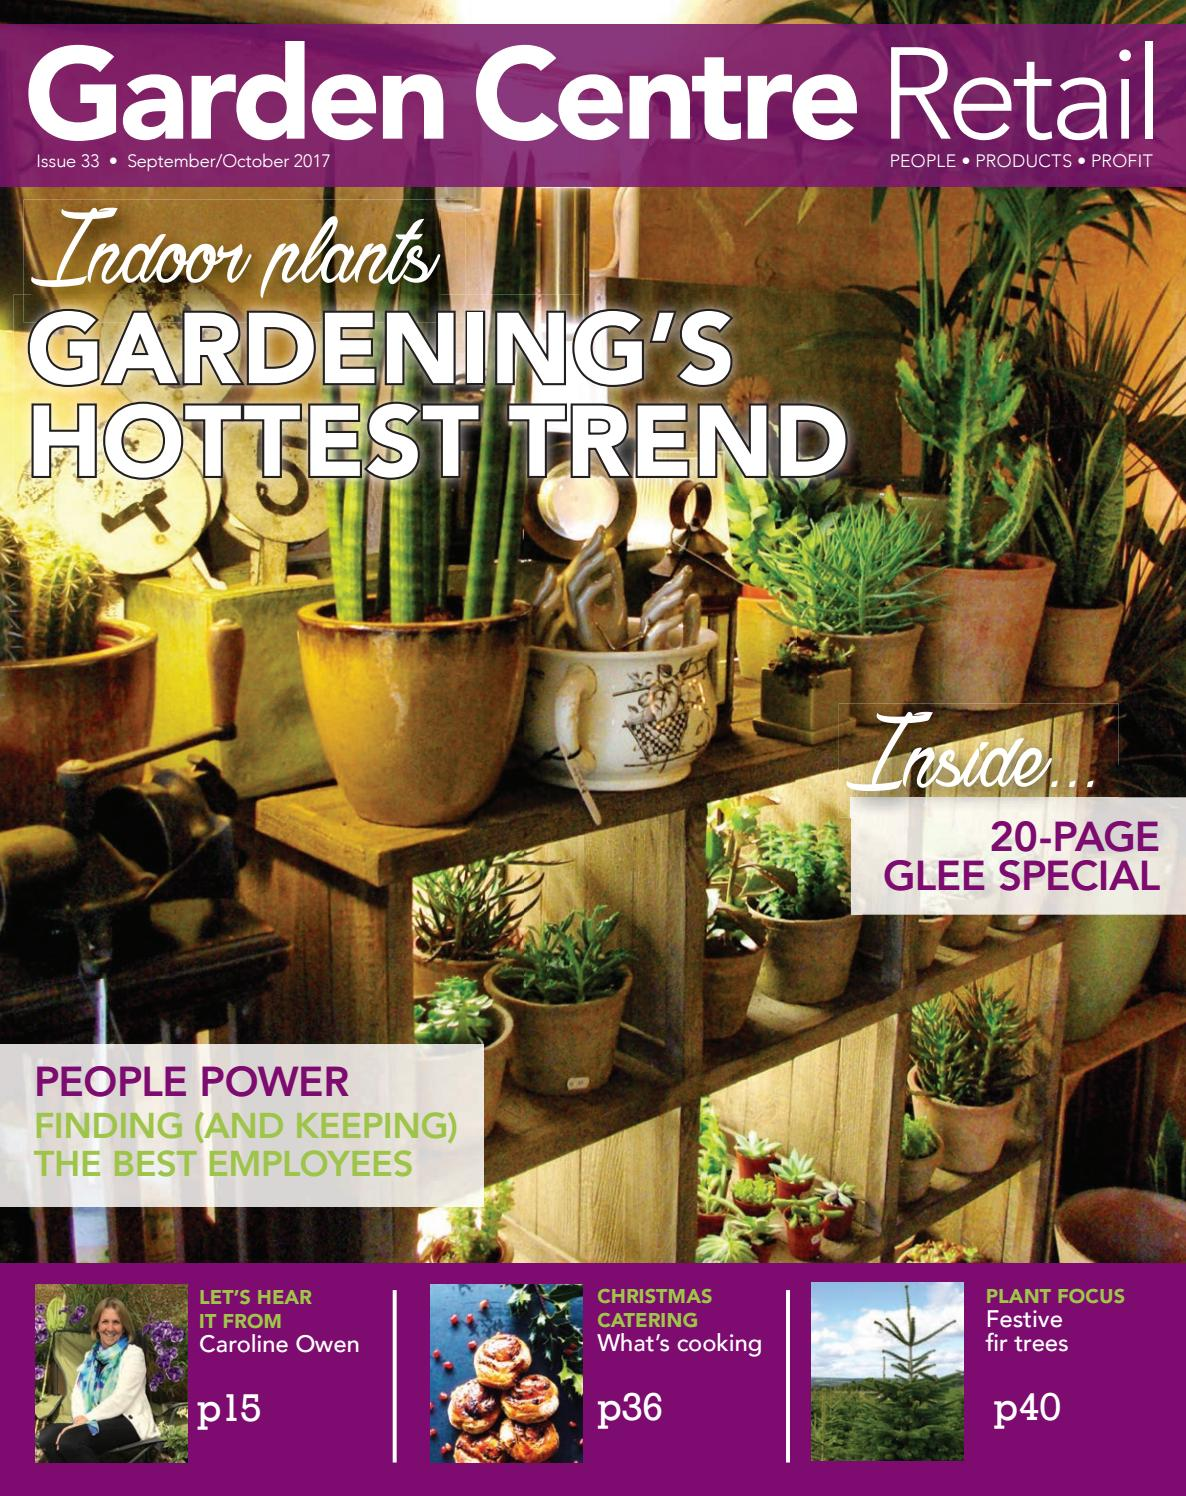 Garden Centre Retail September/October 2017 by Eljays44 - issuu